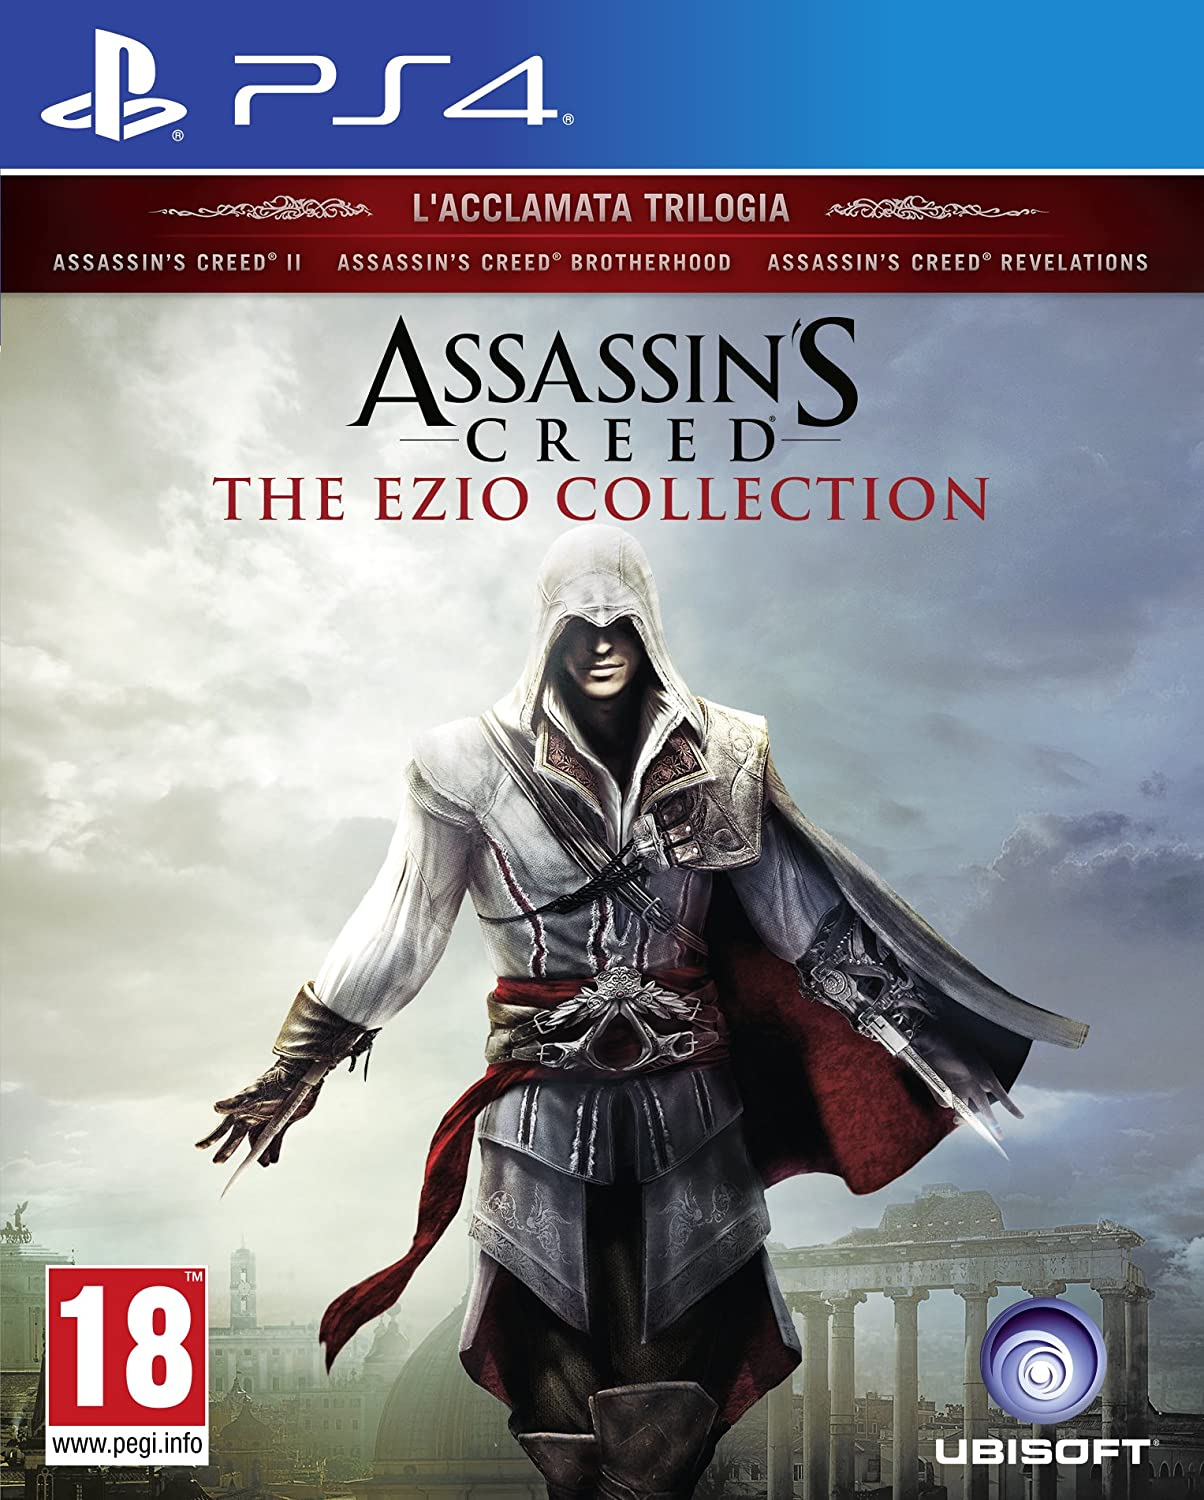 PS4 - Assassin's Creed - The Ezio Collection [PAL ITA]